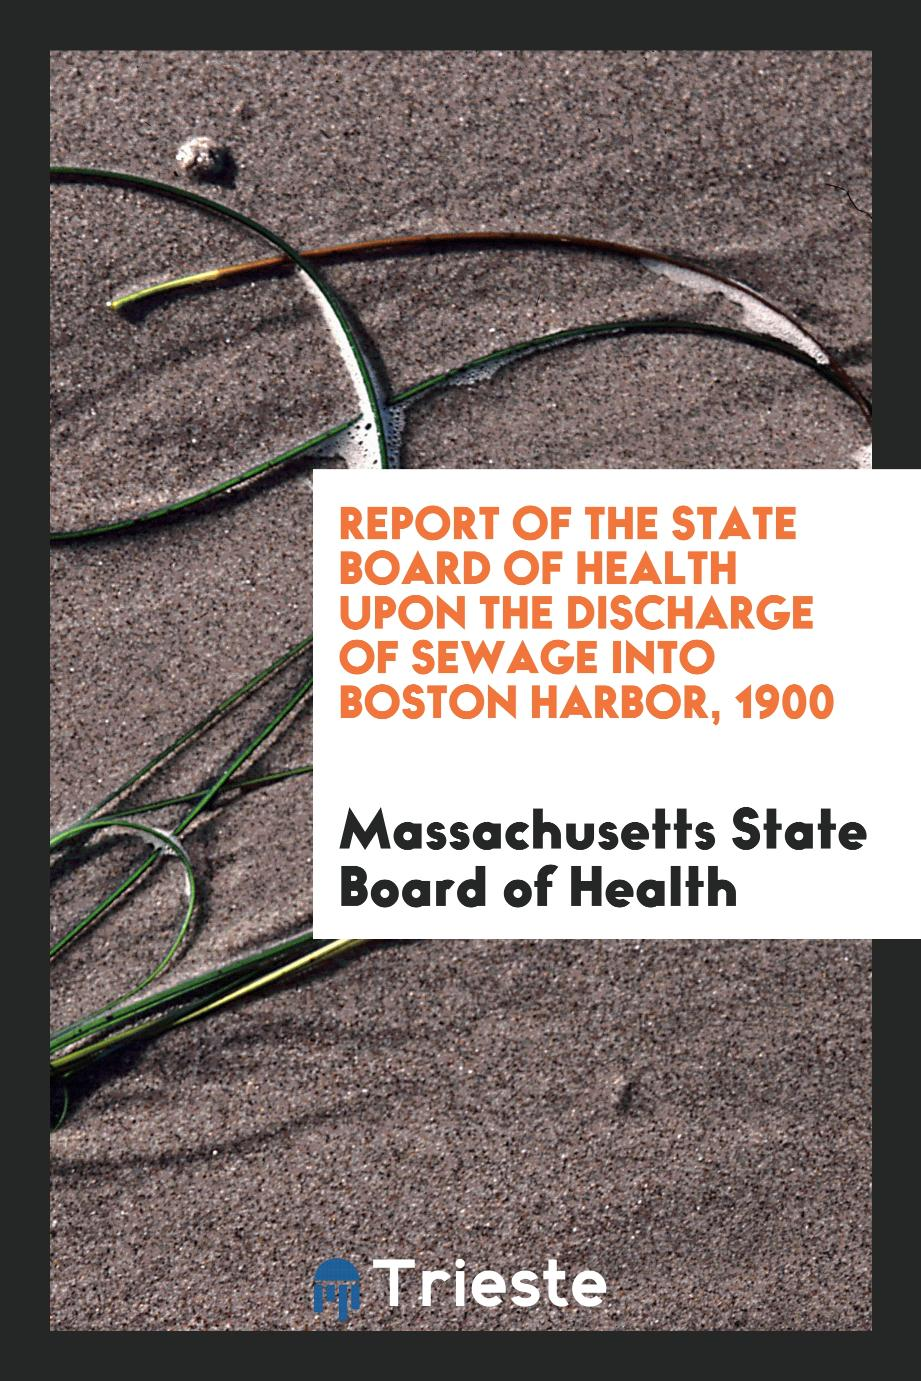 Report of the State Board of Health Upon the Discharge of Sewage Into Boston Harbor, 1900